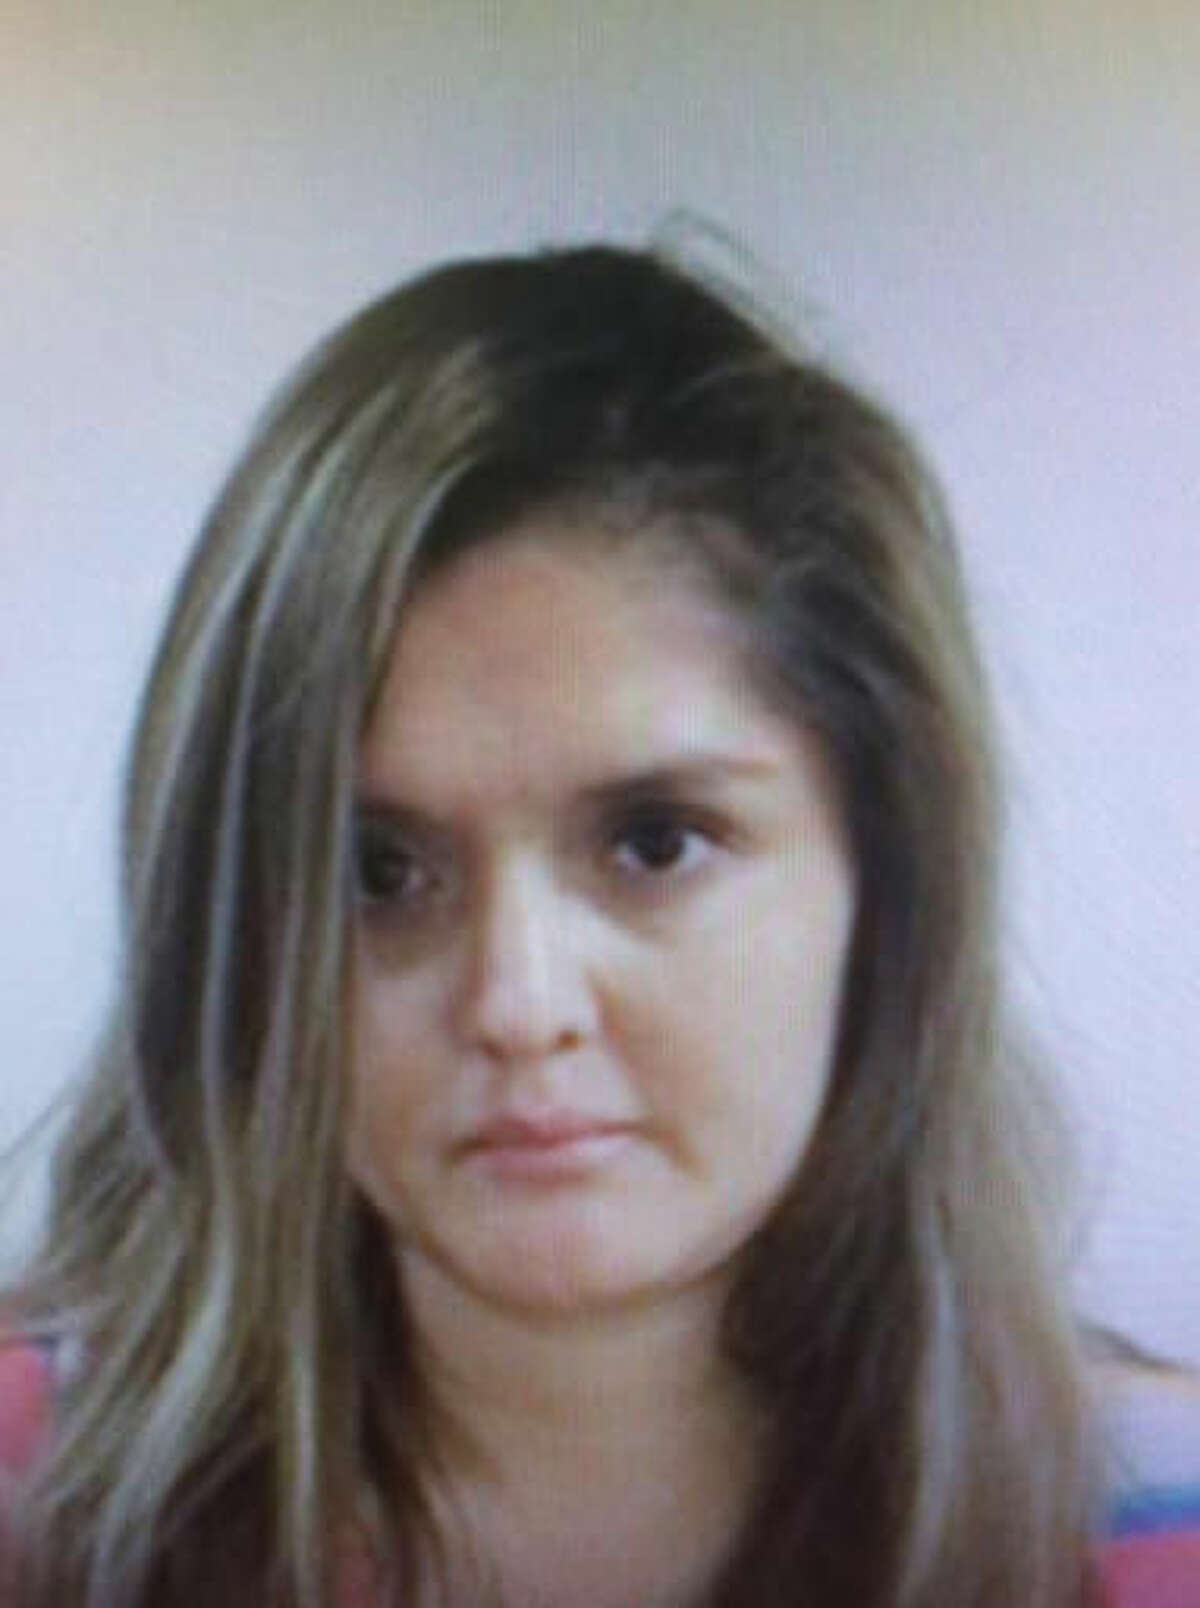 This undated handout photo provided by the FBI shows Brenda Delgado. The Dallas woman accused of arranging for a hit man to kill a dentist who was dating her ex-boyfriend has been added to the FBI's 10 Most Wanted fugitives list Wednesday, April 6, 2016. Delgado is wanted for capital murder and unlawful flight to avoid prosecution. (FBI via AP)